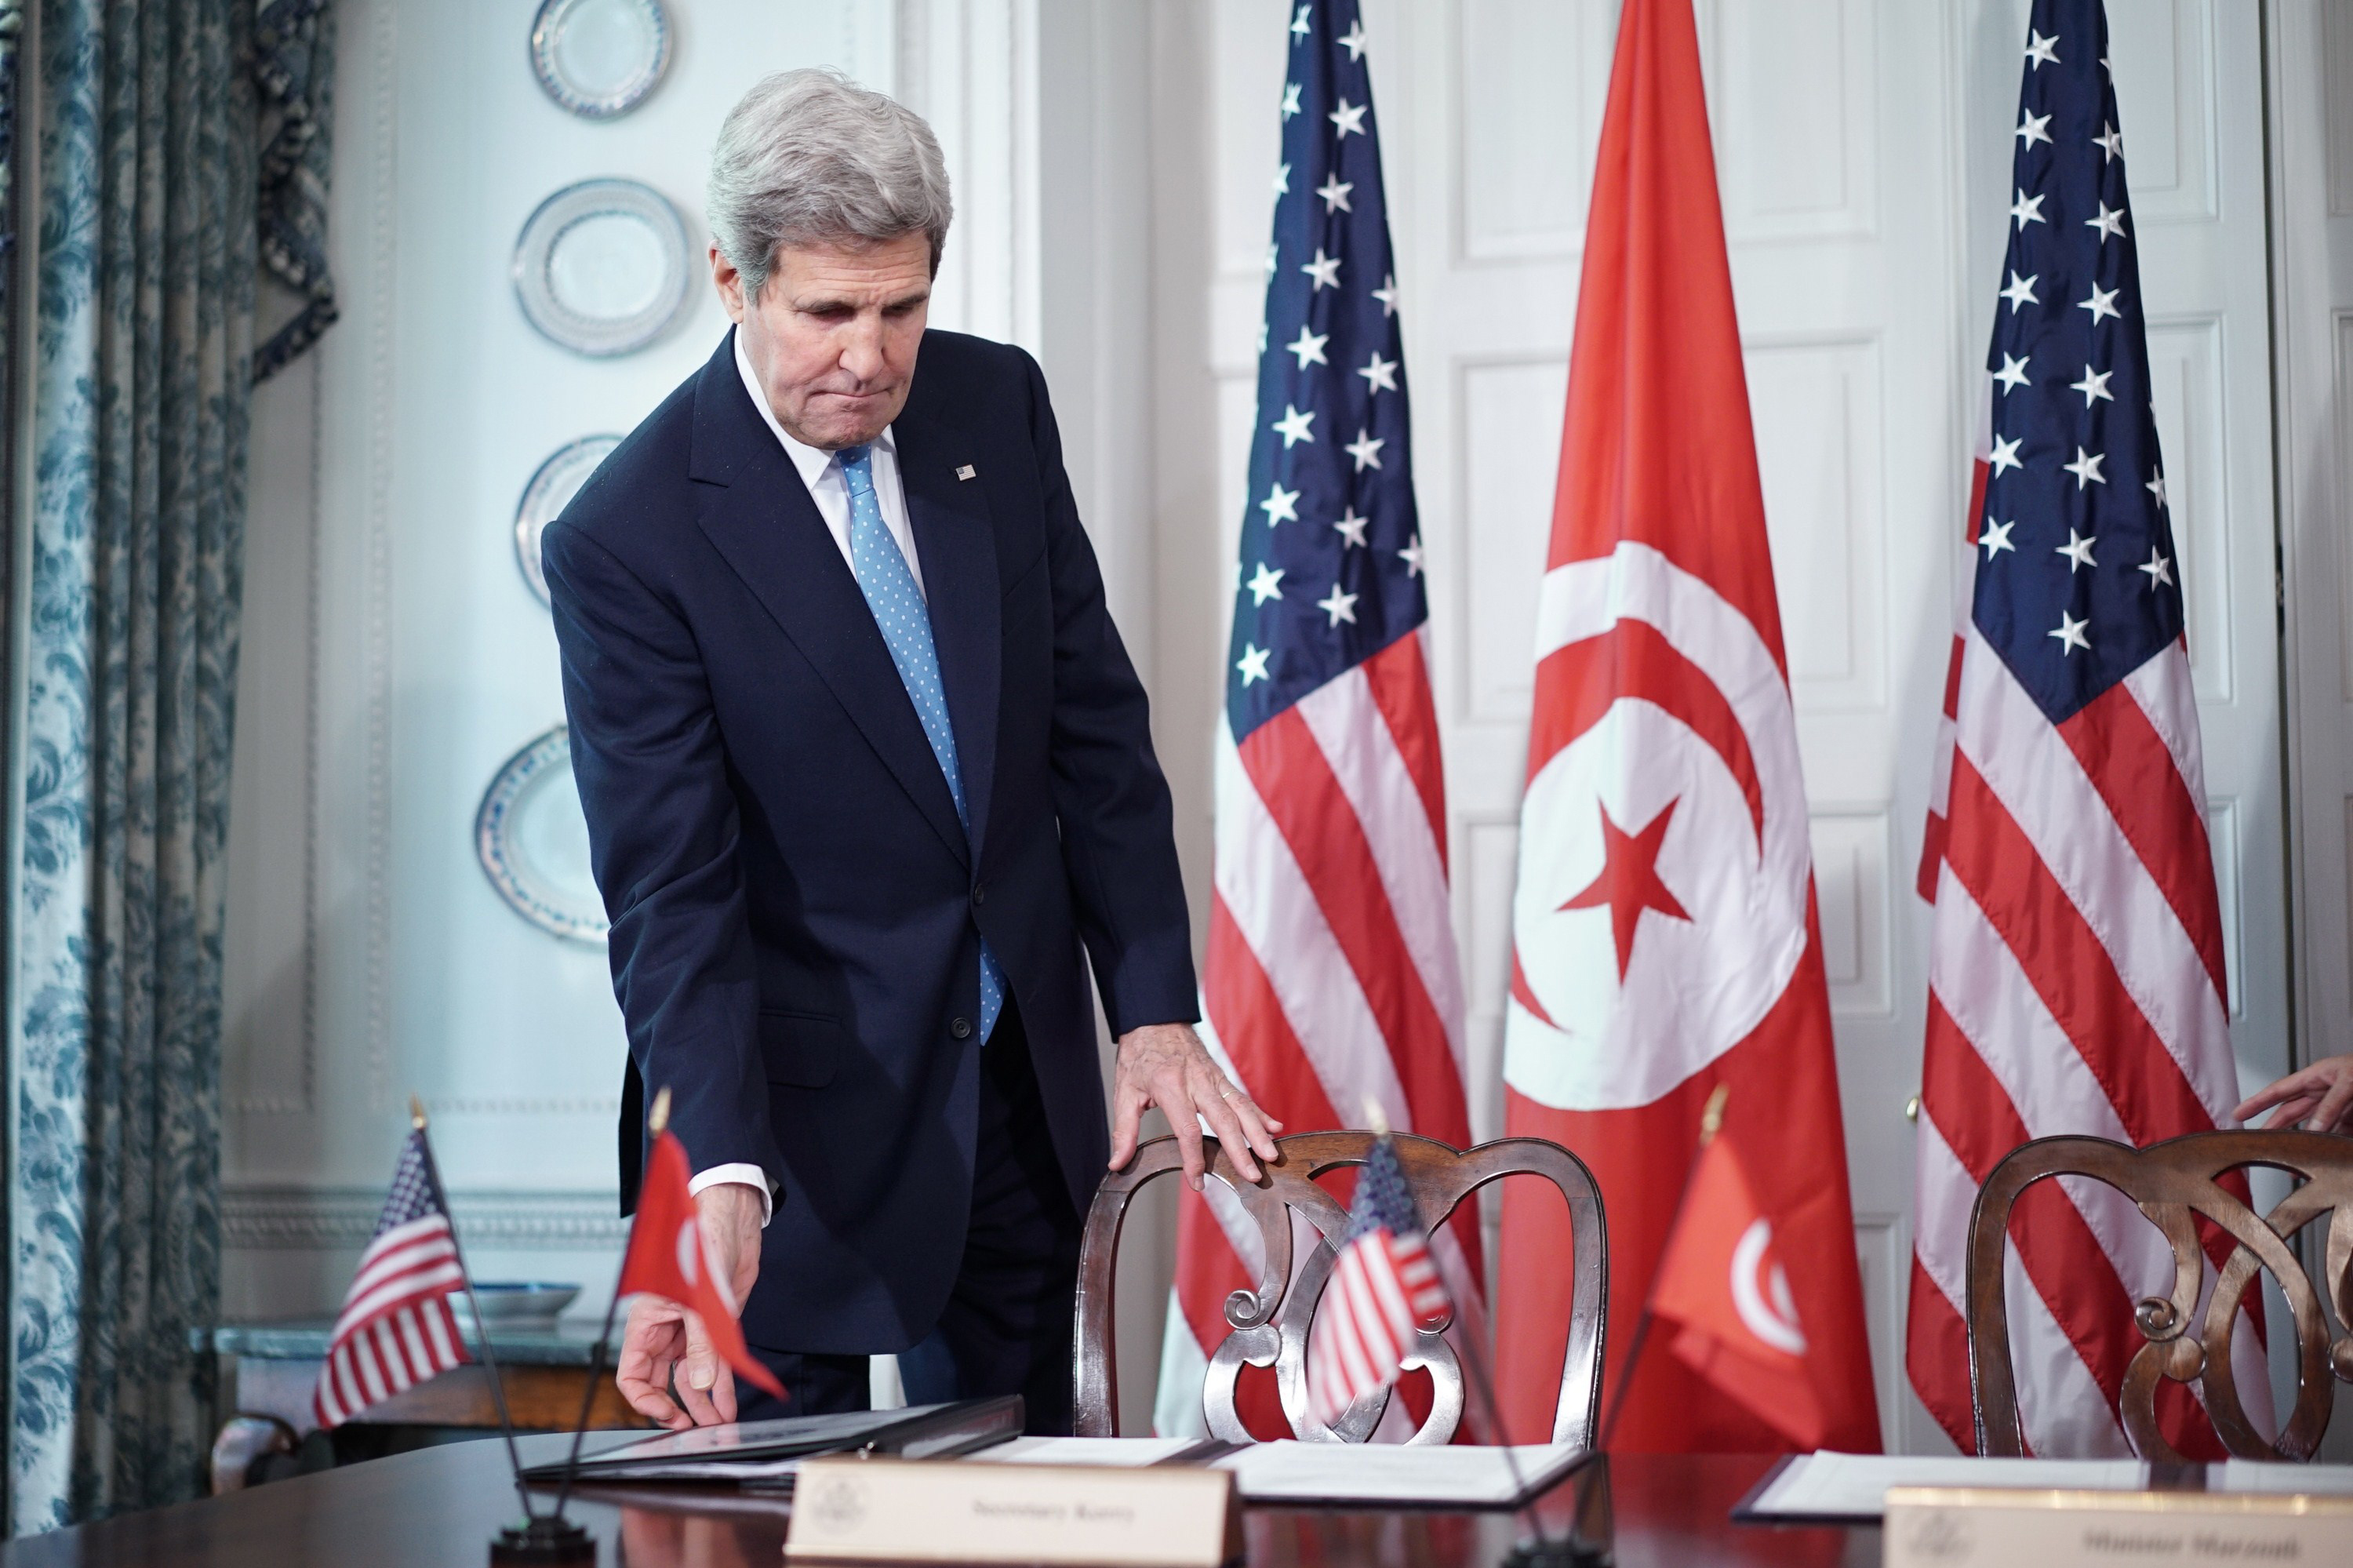 US Secretary of State John Kerry arrives for a signing ceremony for a memorandum of understanding with Tunisian Minister of Political Affairs Mohsen Marzouk at Blair House, the presidential guest house, on May 20, 2015 in Washington, DC.